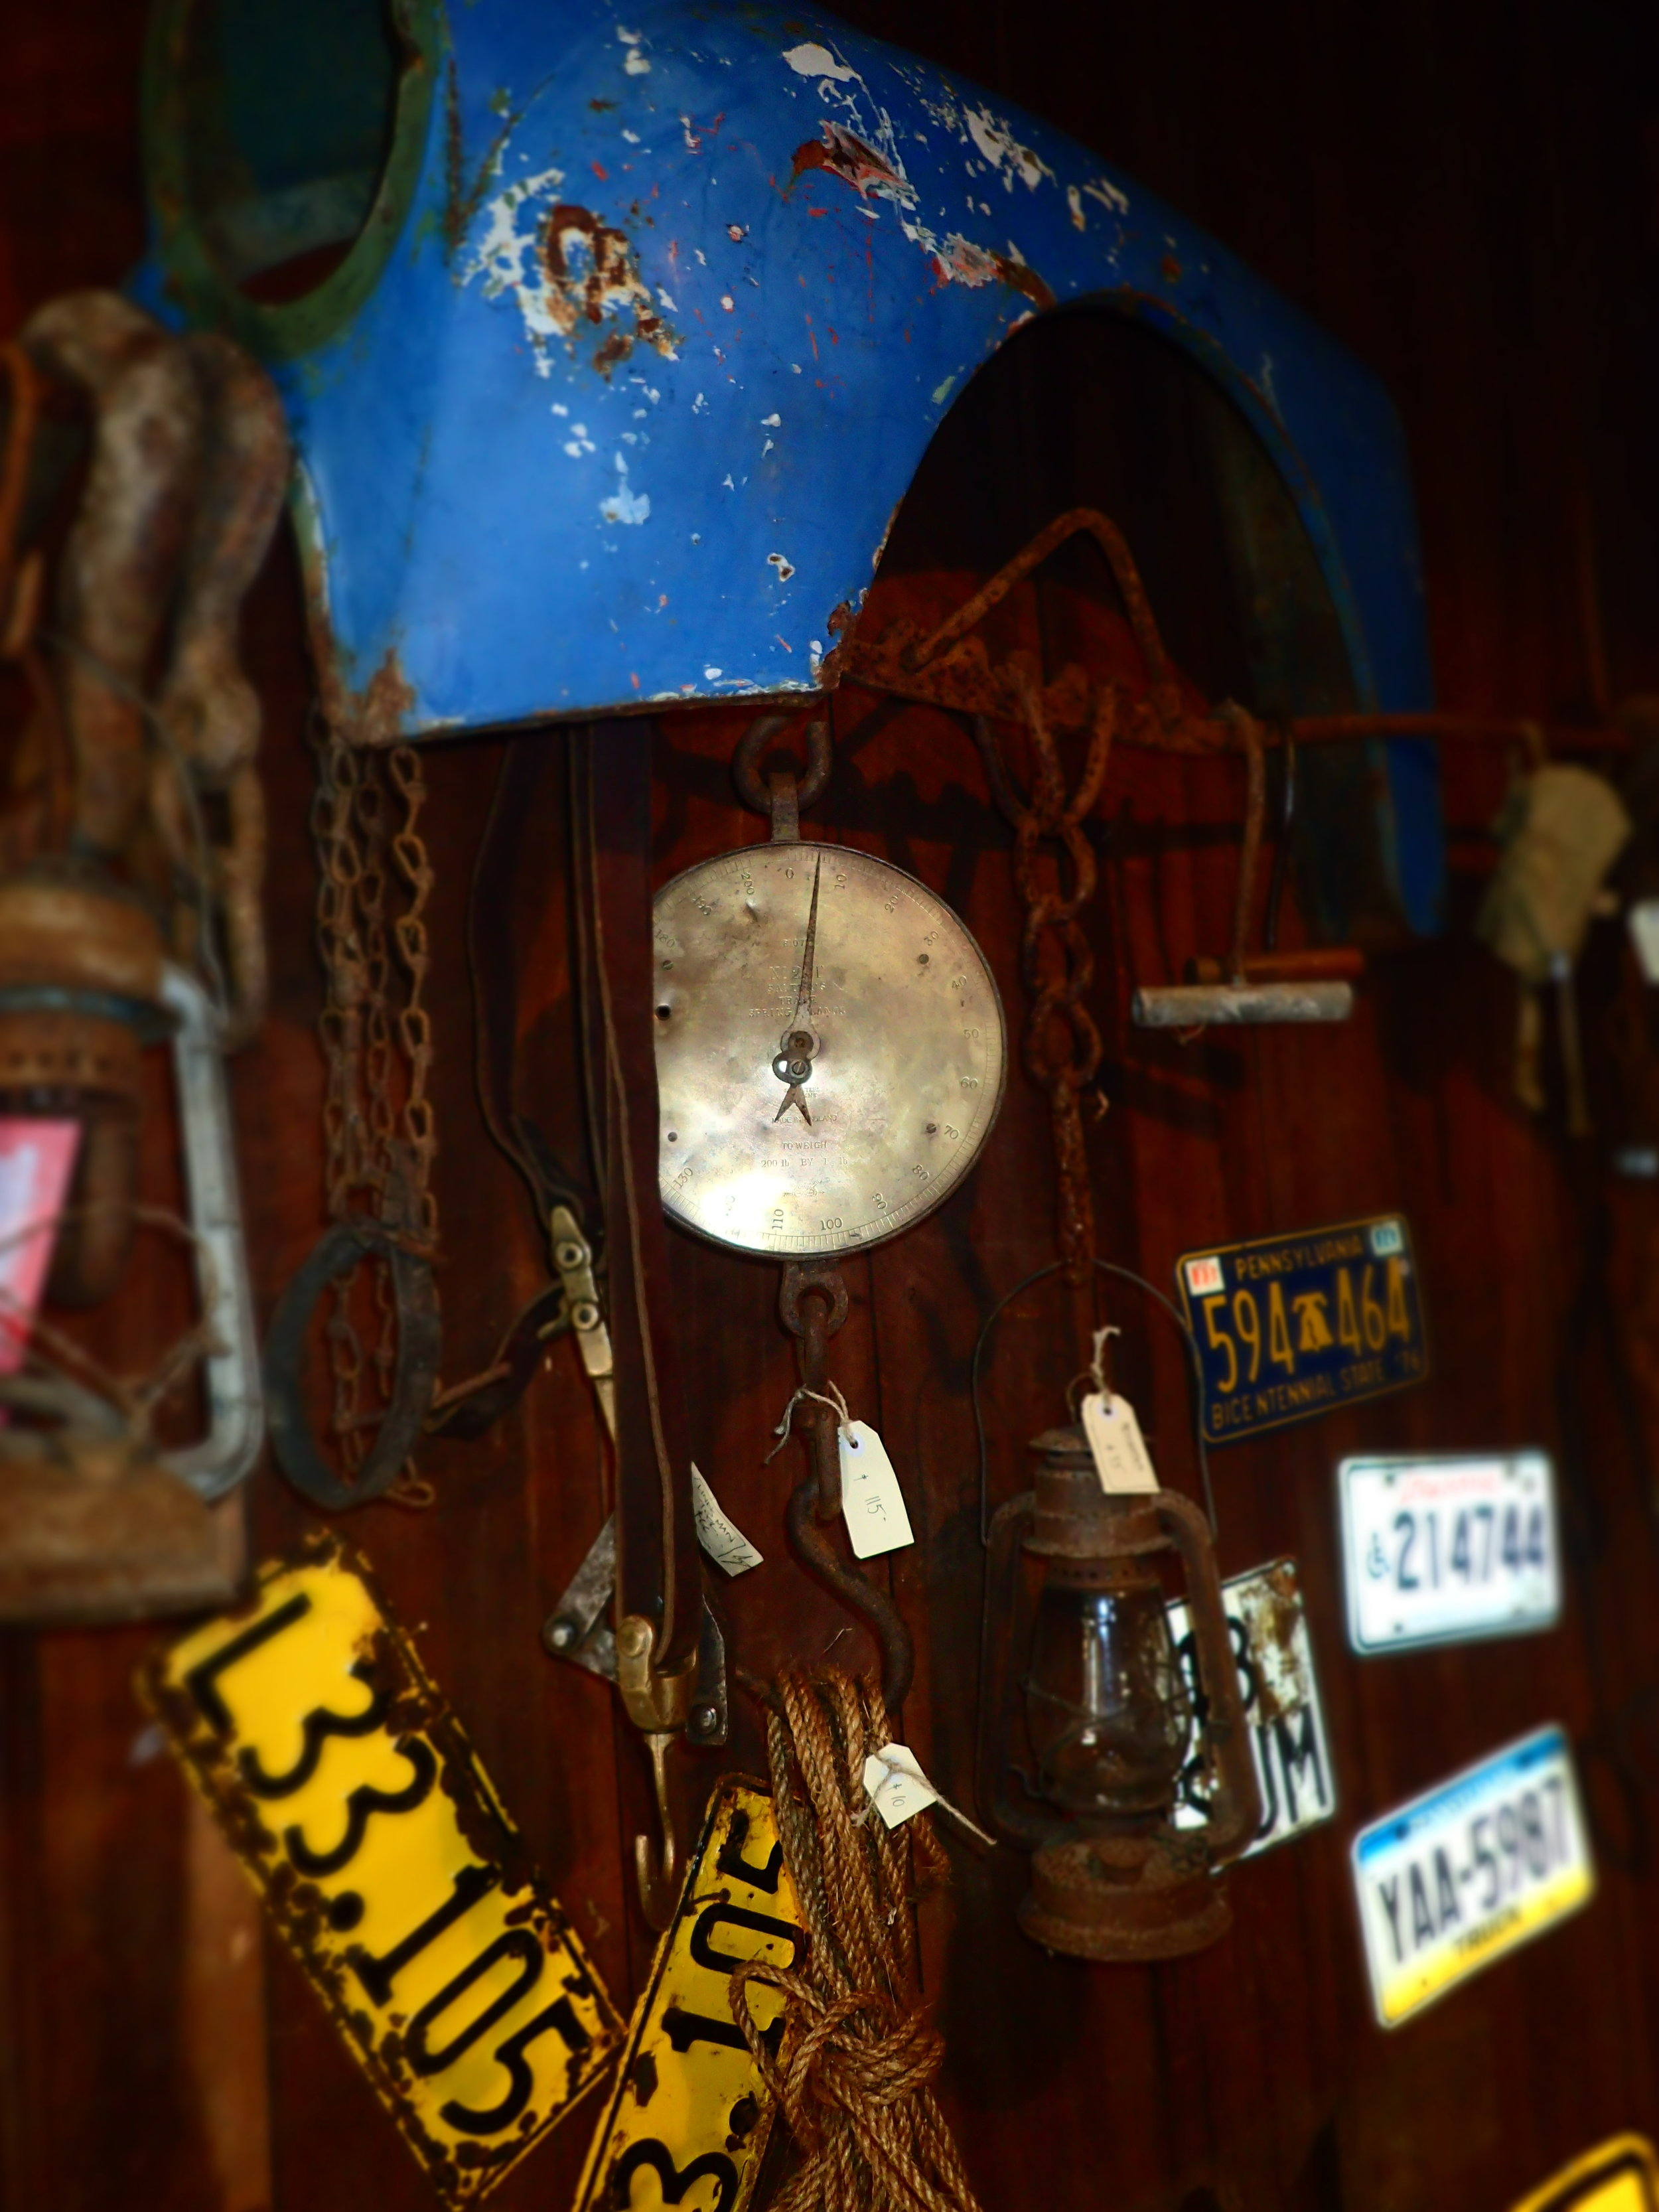 Mancave essentials : NZ & american numberplates, old salter scales to weigh your hunting trophy, kerosene lantern,rusty chains.